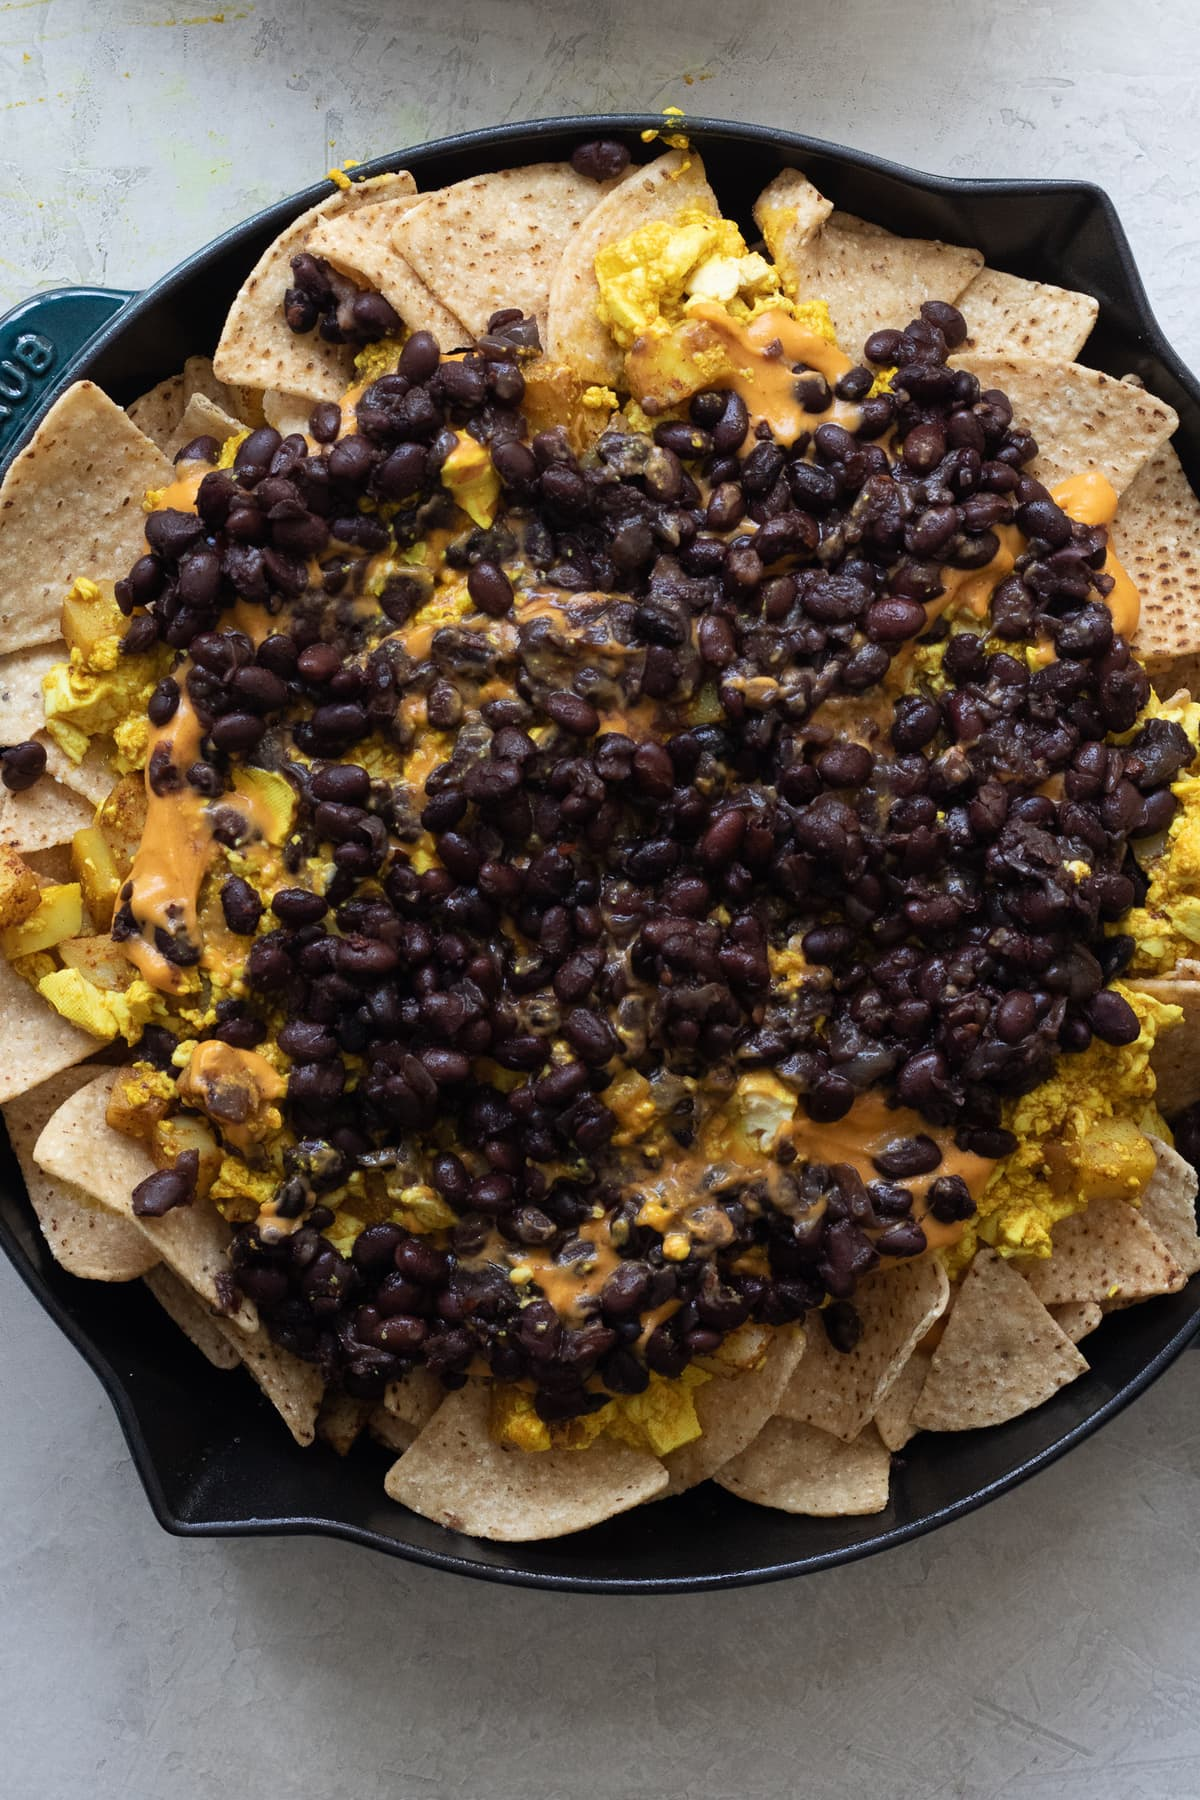 Nacho cheese, potatoes, tofu scramble and black beans layered on top of chips in large skillet.